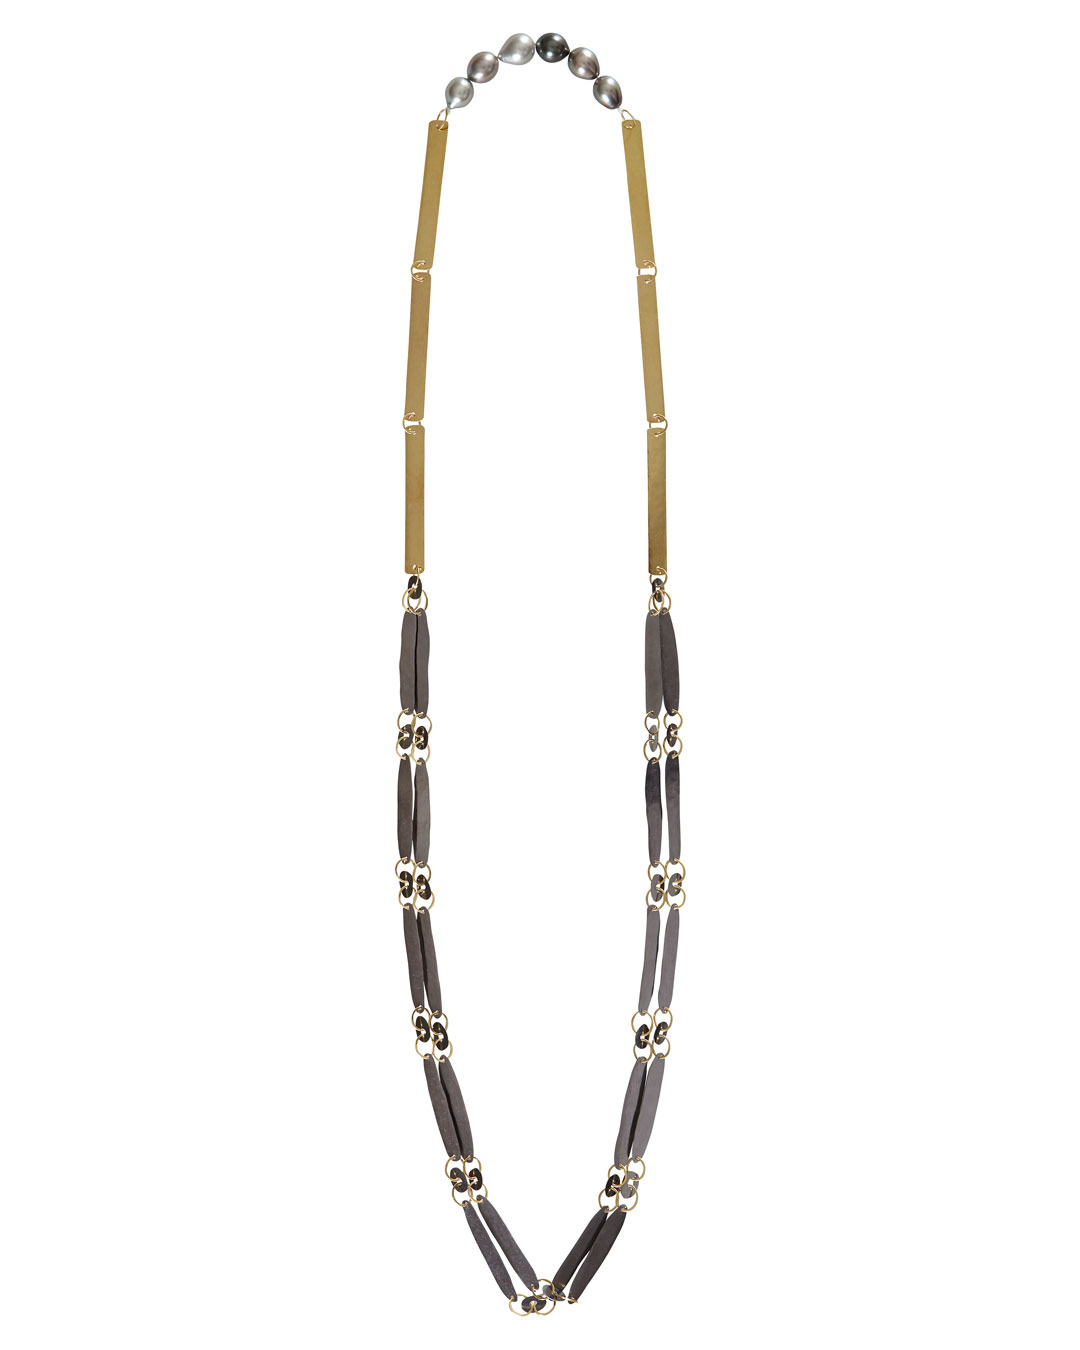 Annelies Planteijdt, Necklace with Blade of Grass, 2018, necklace; 18ct gold, tantalum, Tahiti pearls, 100 x 450 mm, €8875 (image 1/2)